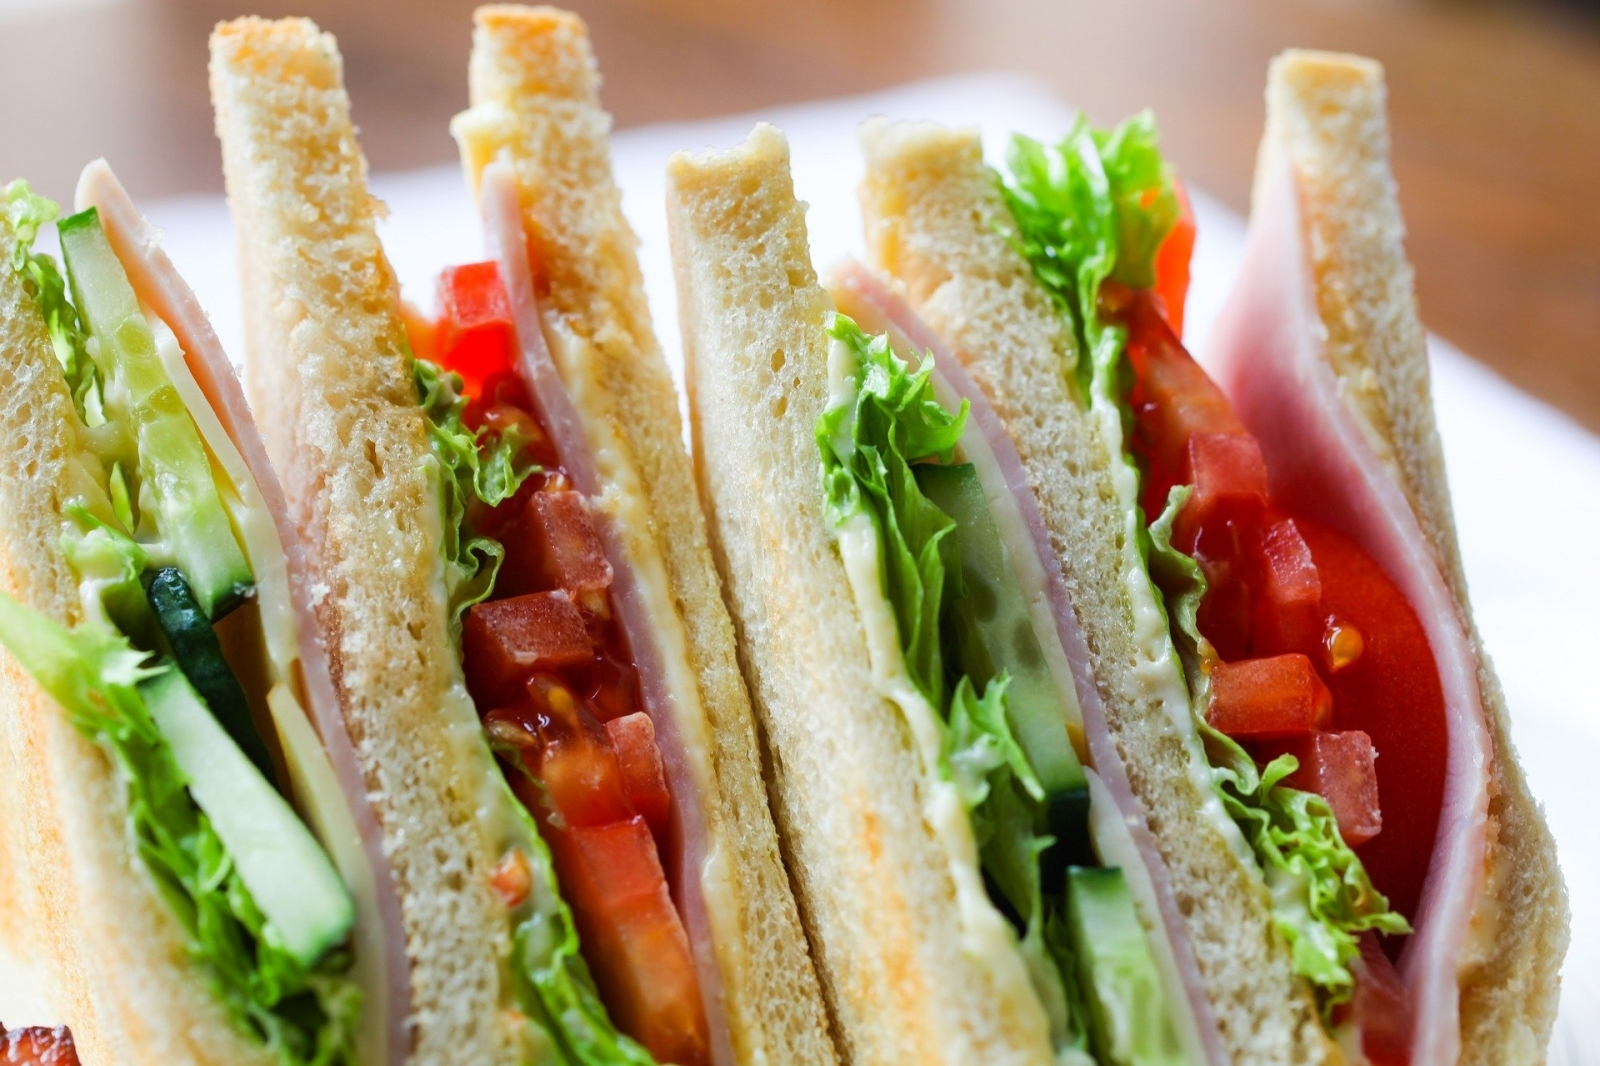 Here's which sandwiches are most damaging to the environment